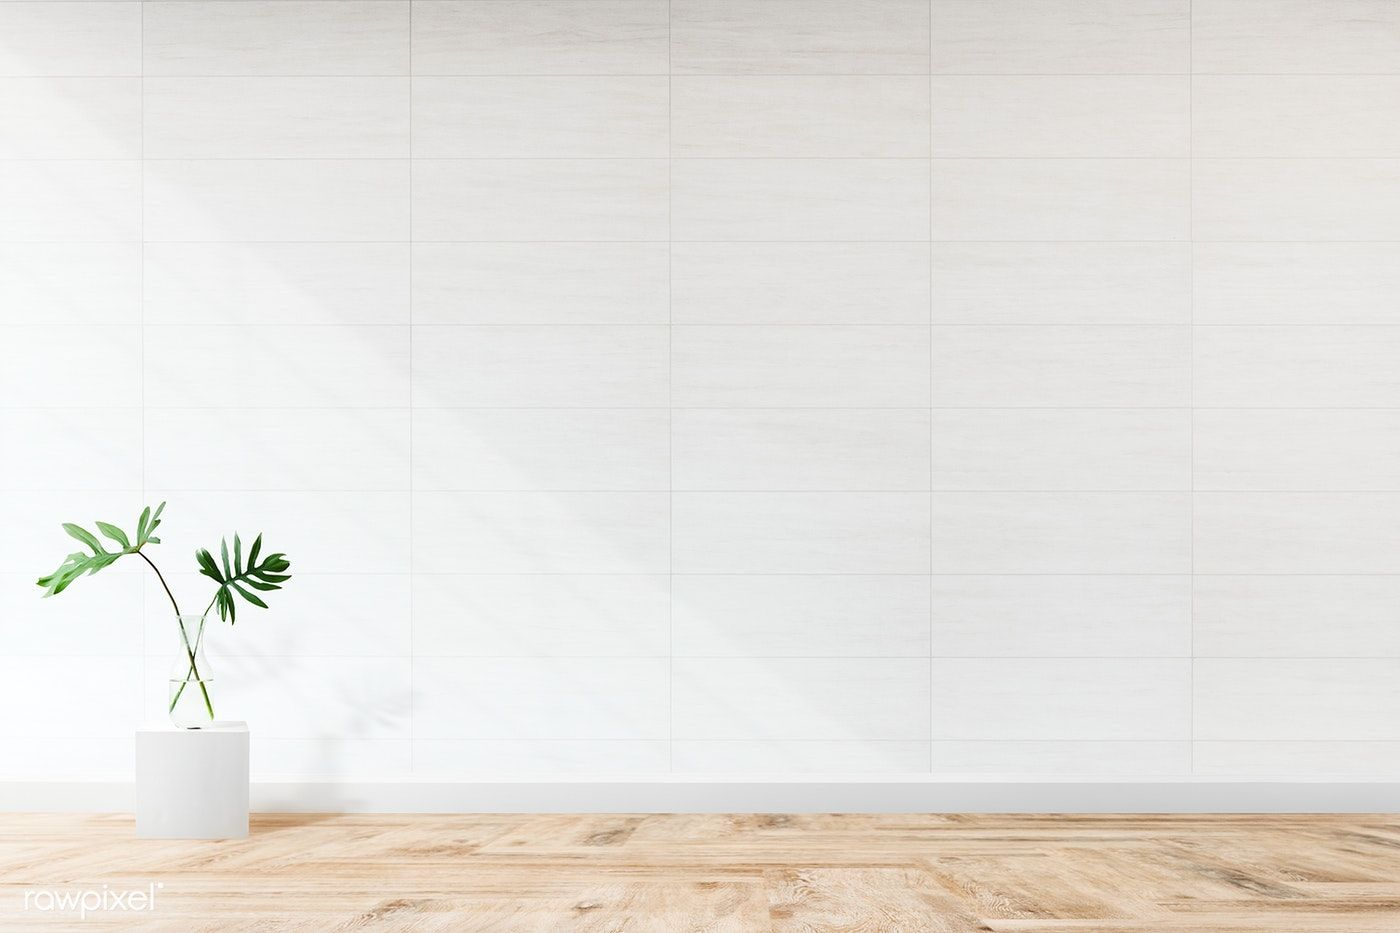 Download Premium Image Of Plant Against A White Wall Mockup 580499 Latar Belakang Dinding Gambar